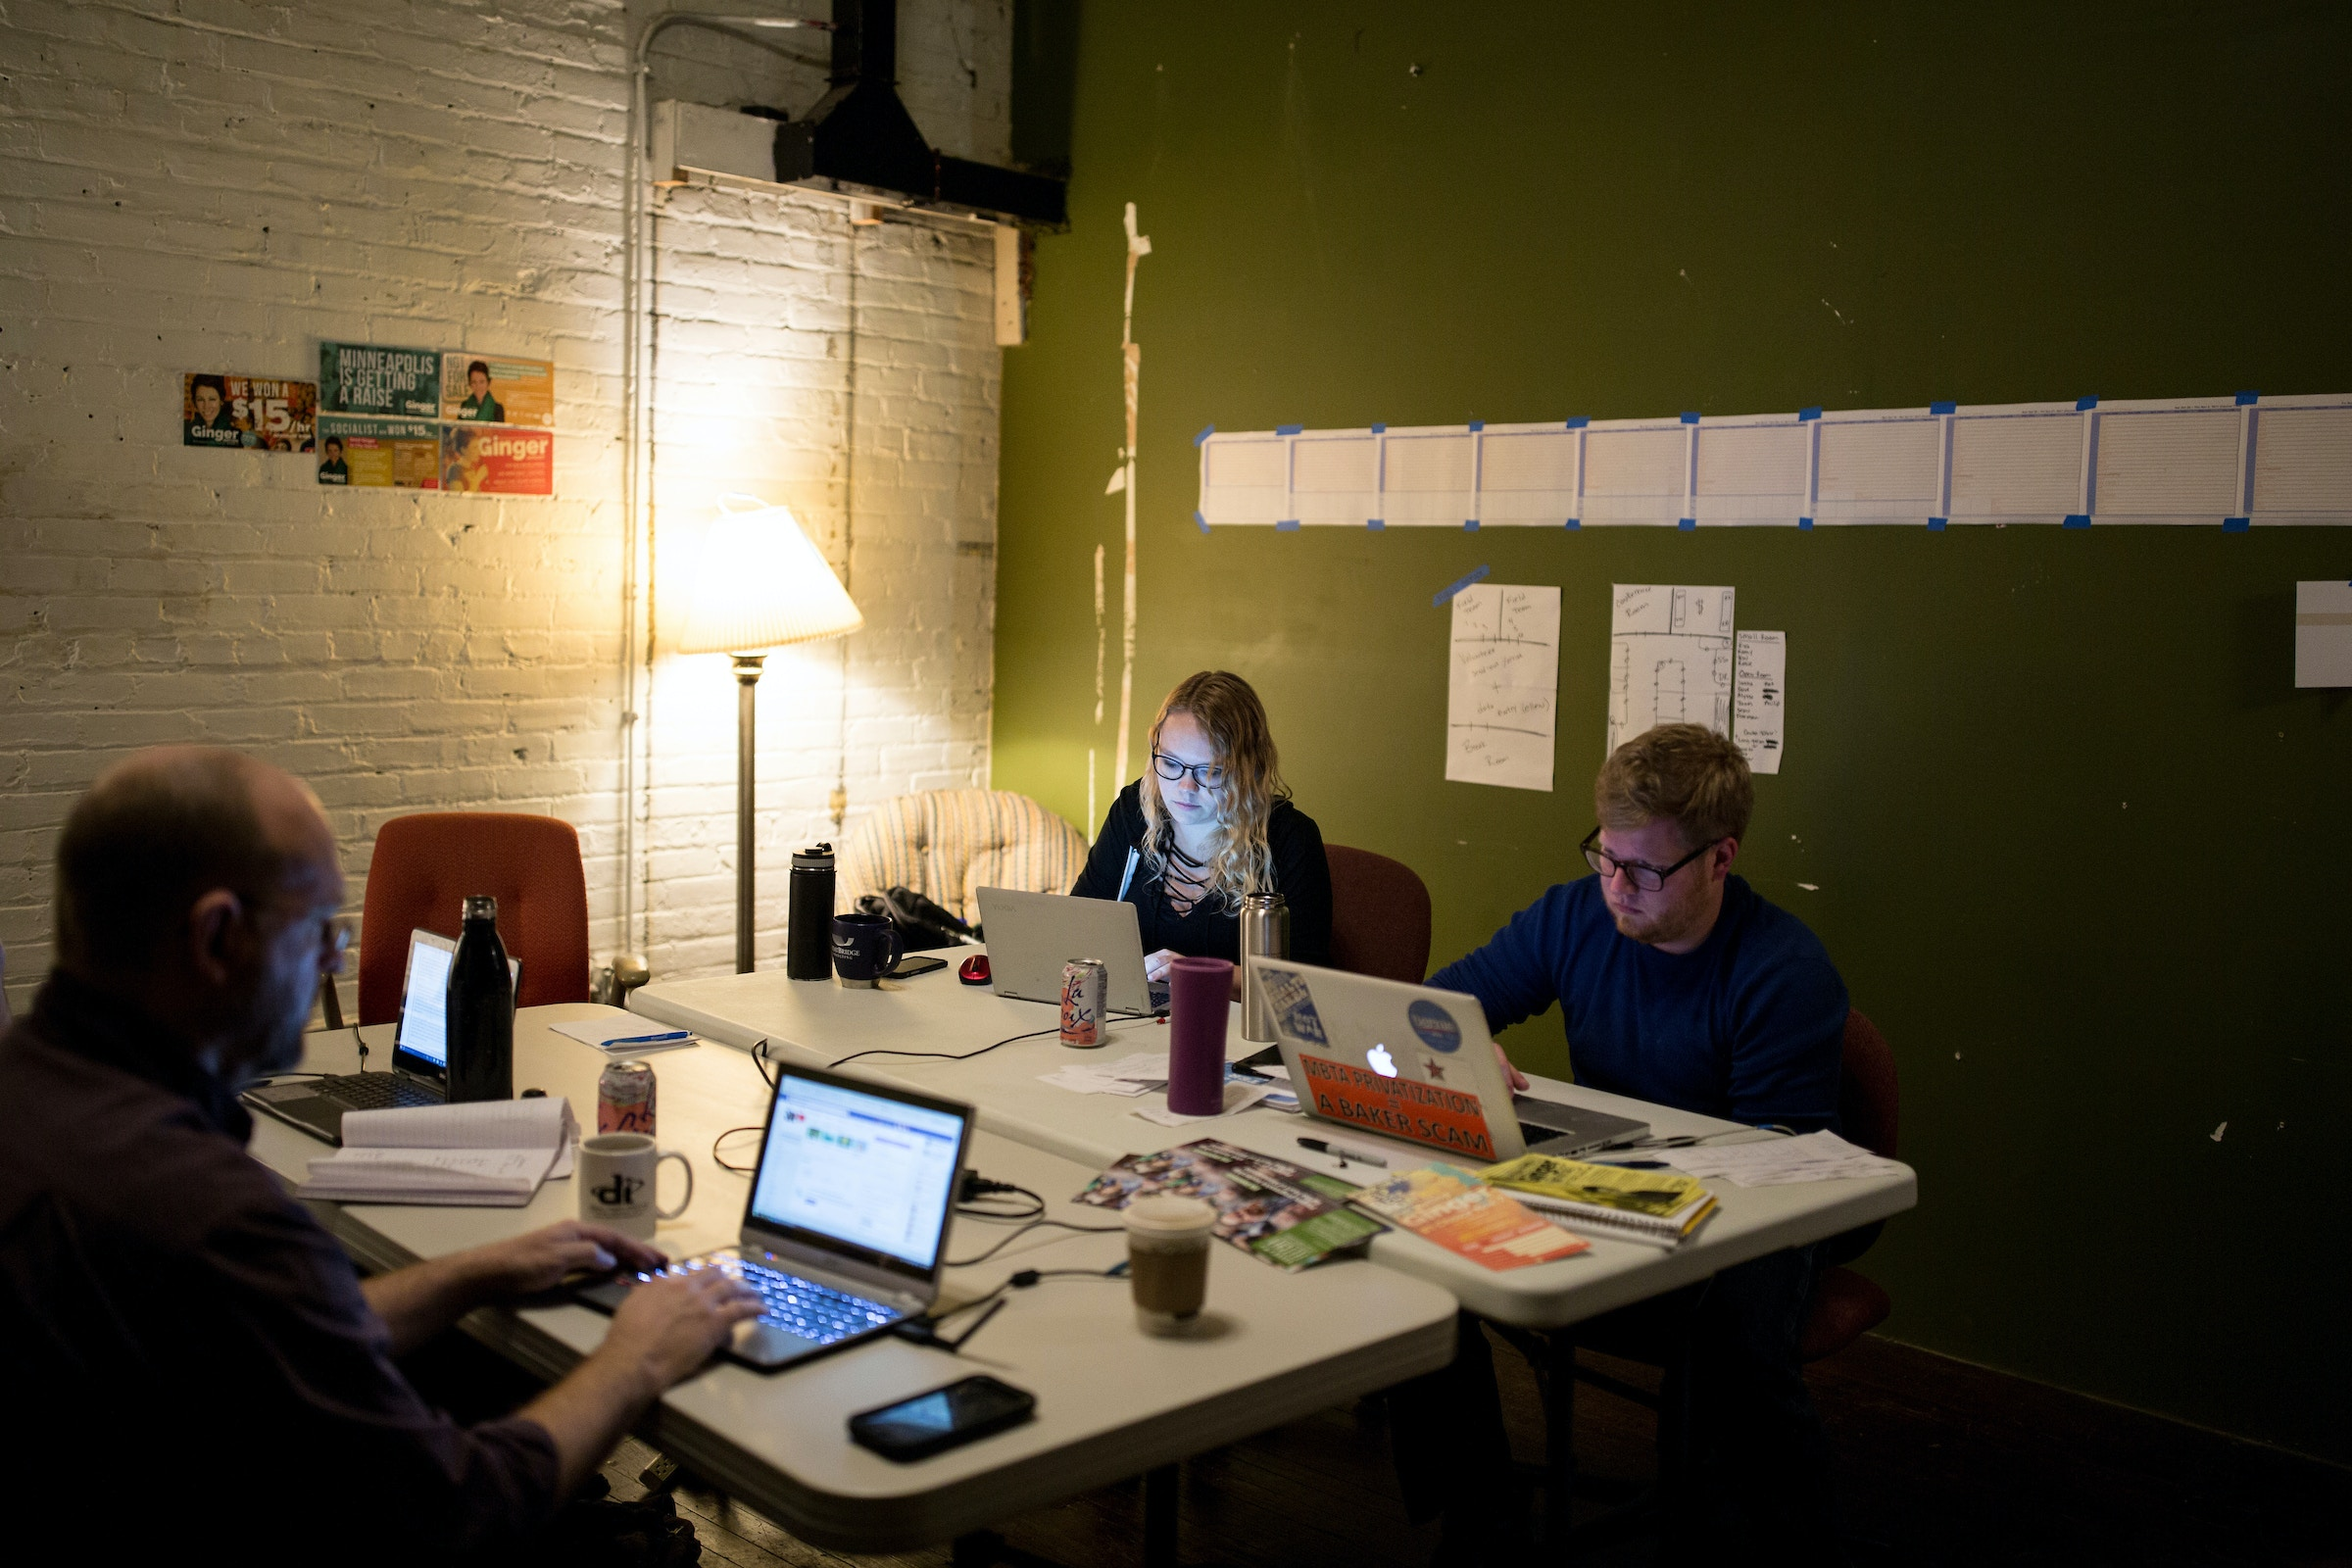 Kelly Bellin and Andy Moxley, right, work on Ginger Jentzen's campaign in  the campaign